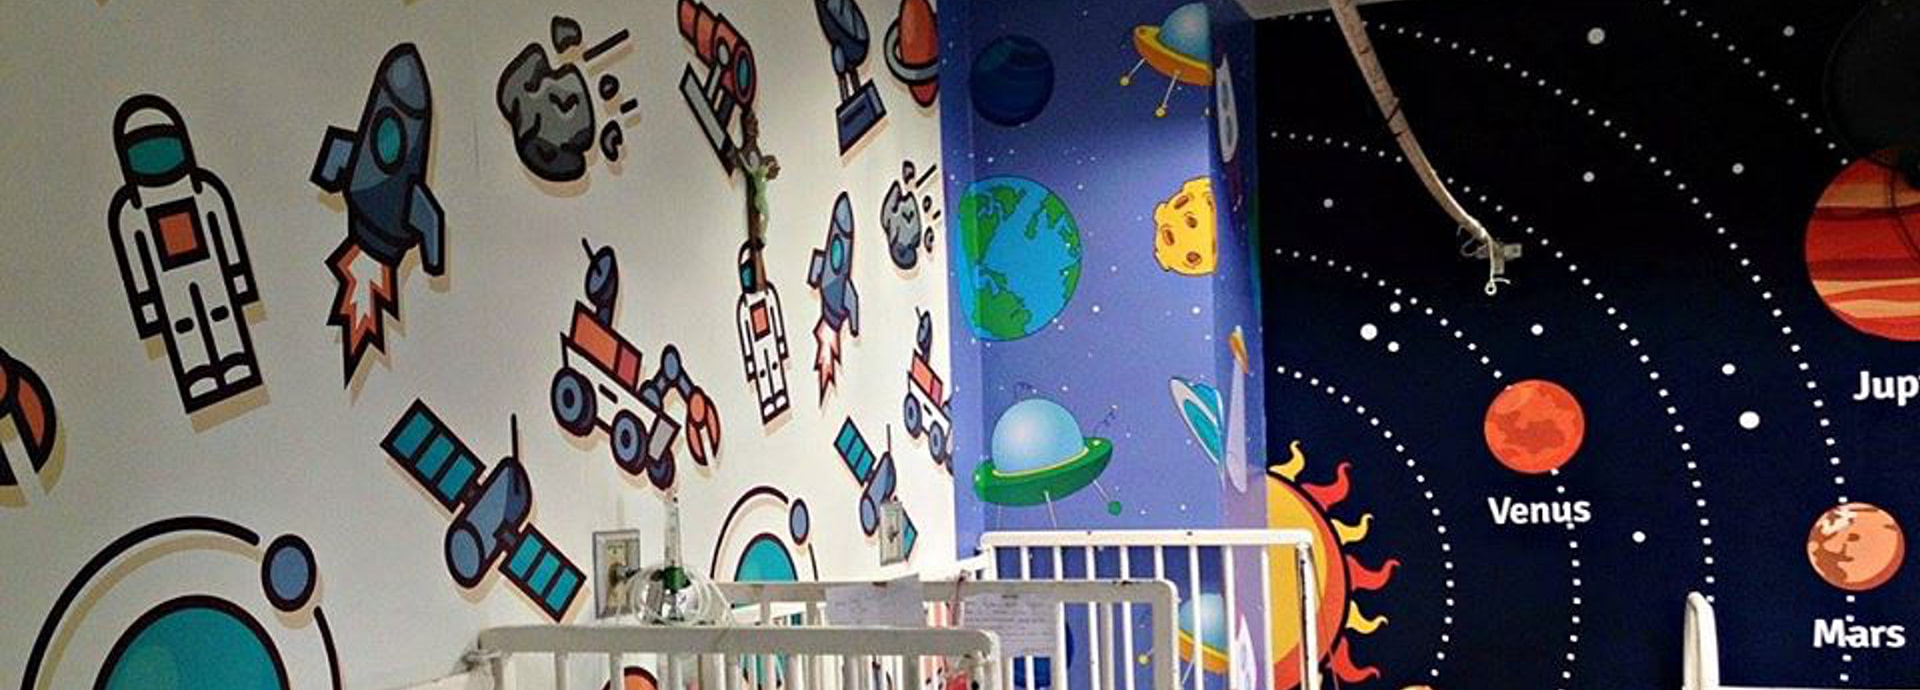 Vibrant Rooms Paint Difference for Patients at National Children's Hospital